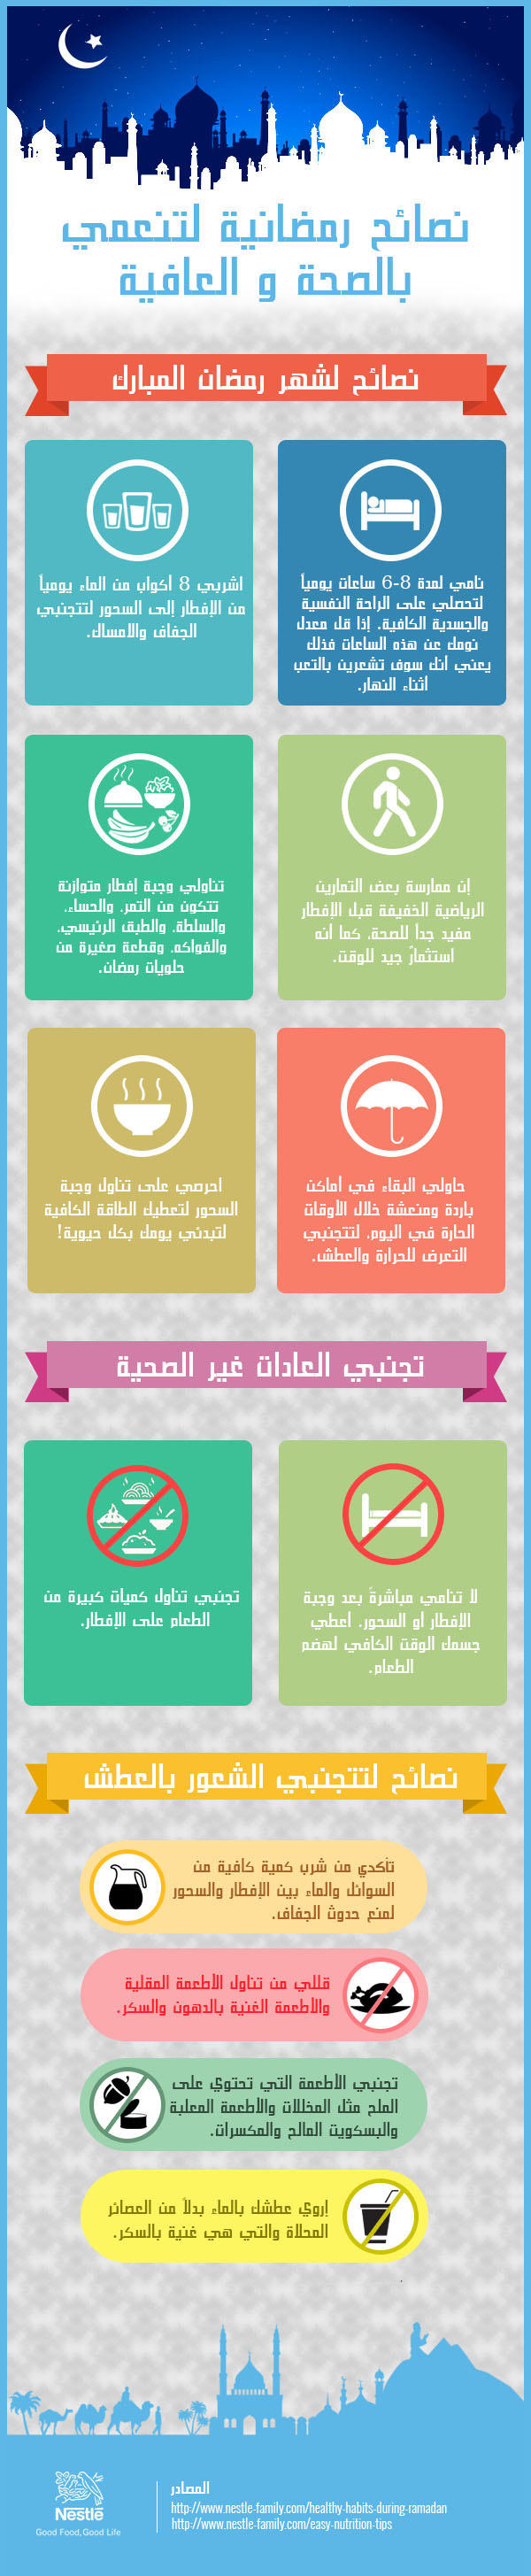 health-tips-for-ramadan-arabic